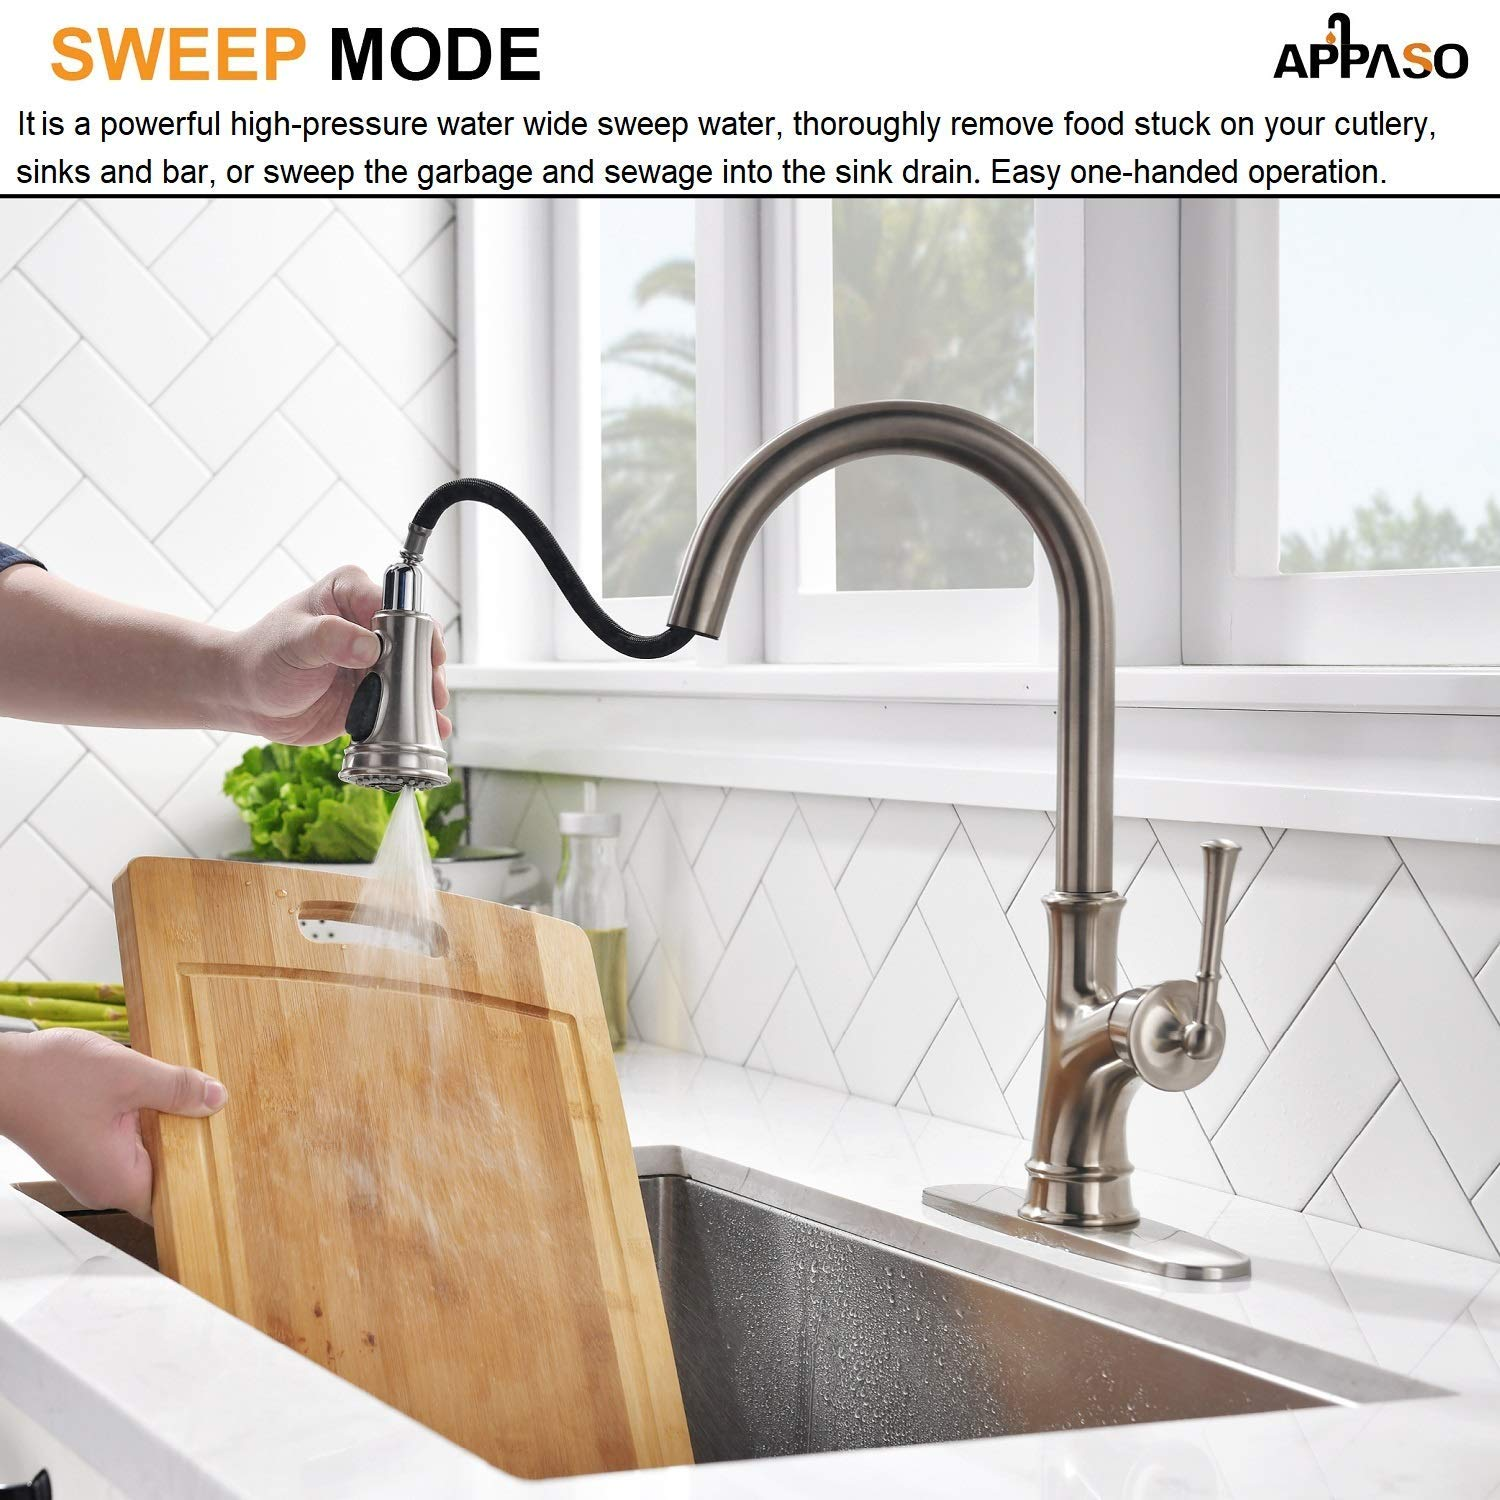 APPASO Pull Down Kitchen Faucet with Magnetic Docking Sprayer, Stainless Steel Brushed Nickel Single Handle Commercial High Arc Single Hole Pull Out Kitchen Sink Faucets with Deck Plate by APPASO (Image #5)